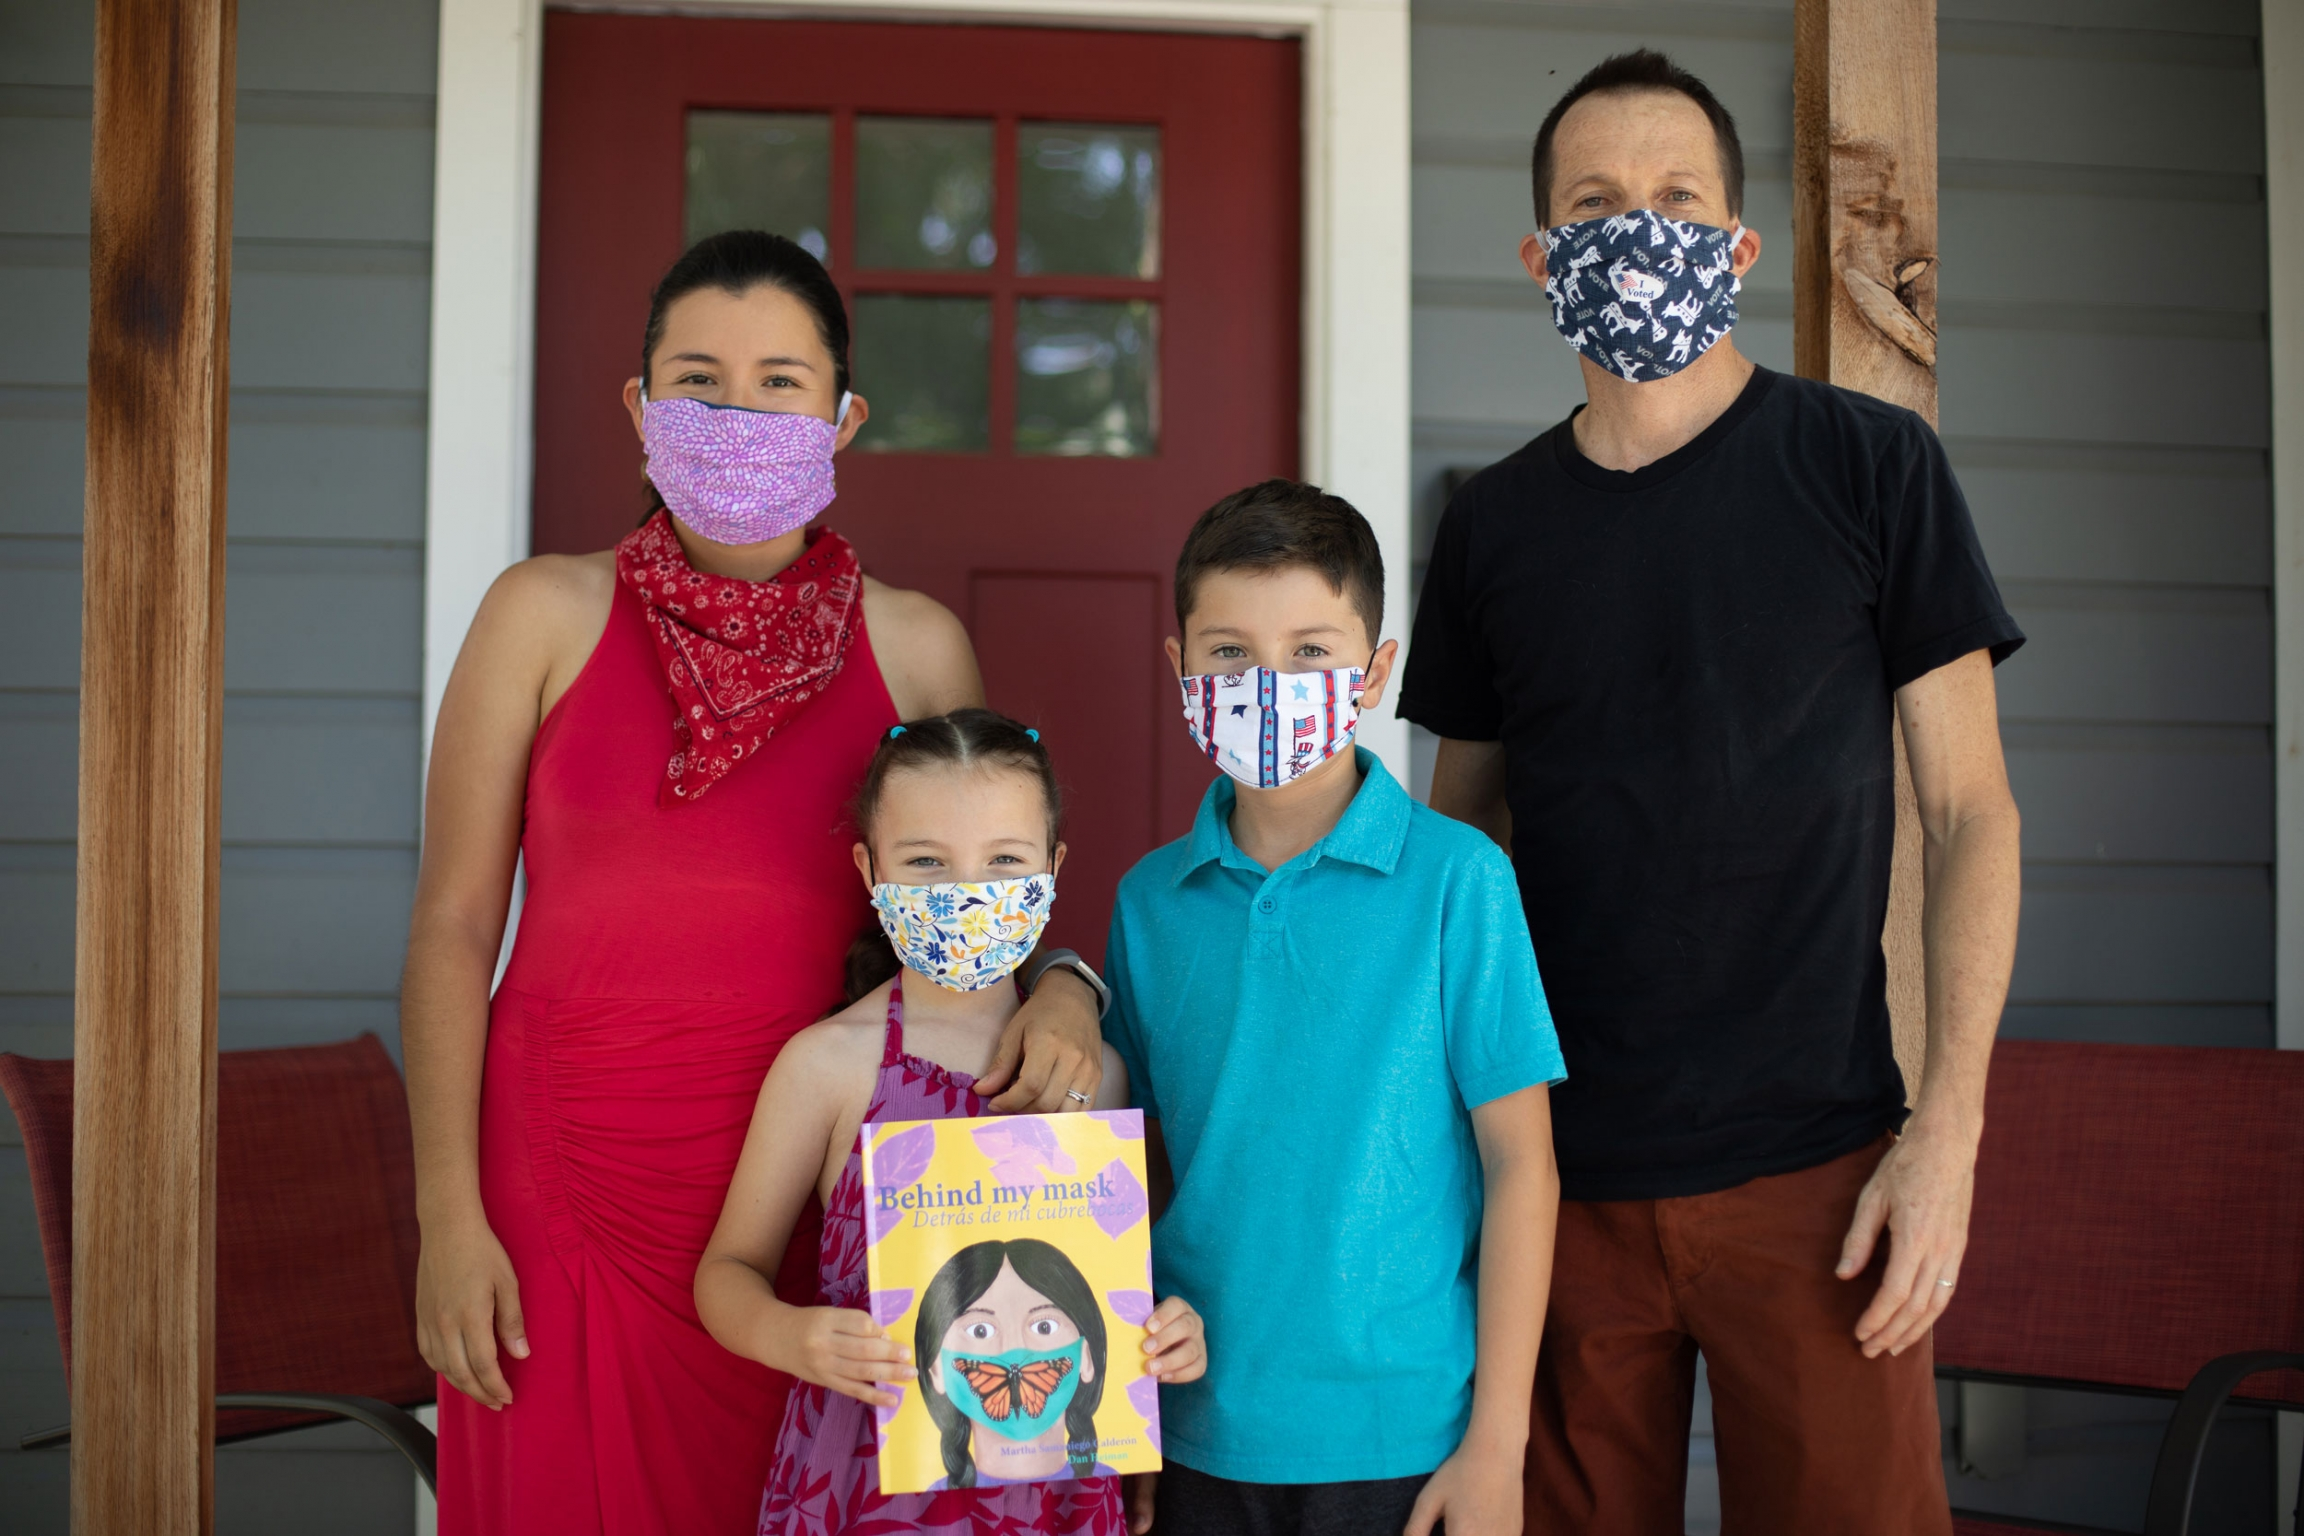 A family of four pose for a photo wearing masks. The young girl holds a book in her hands.